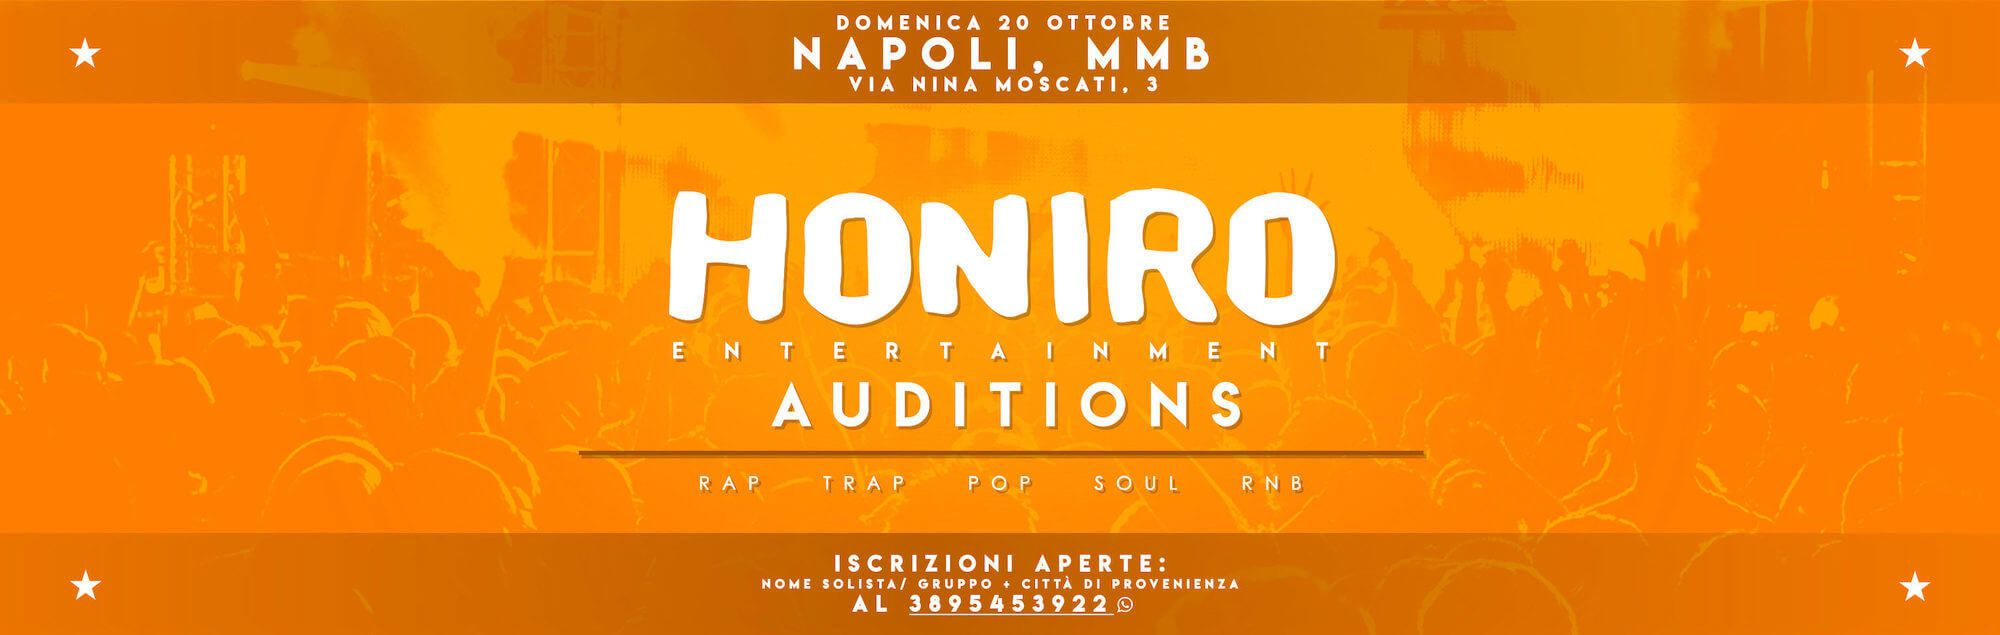 banner-honiro-auditions